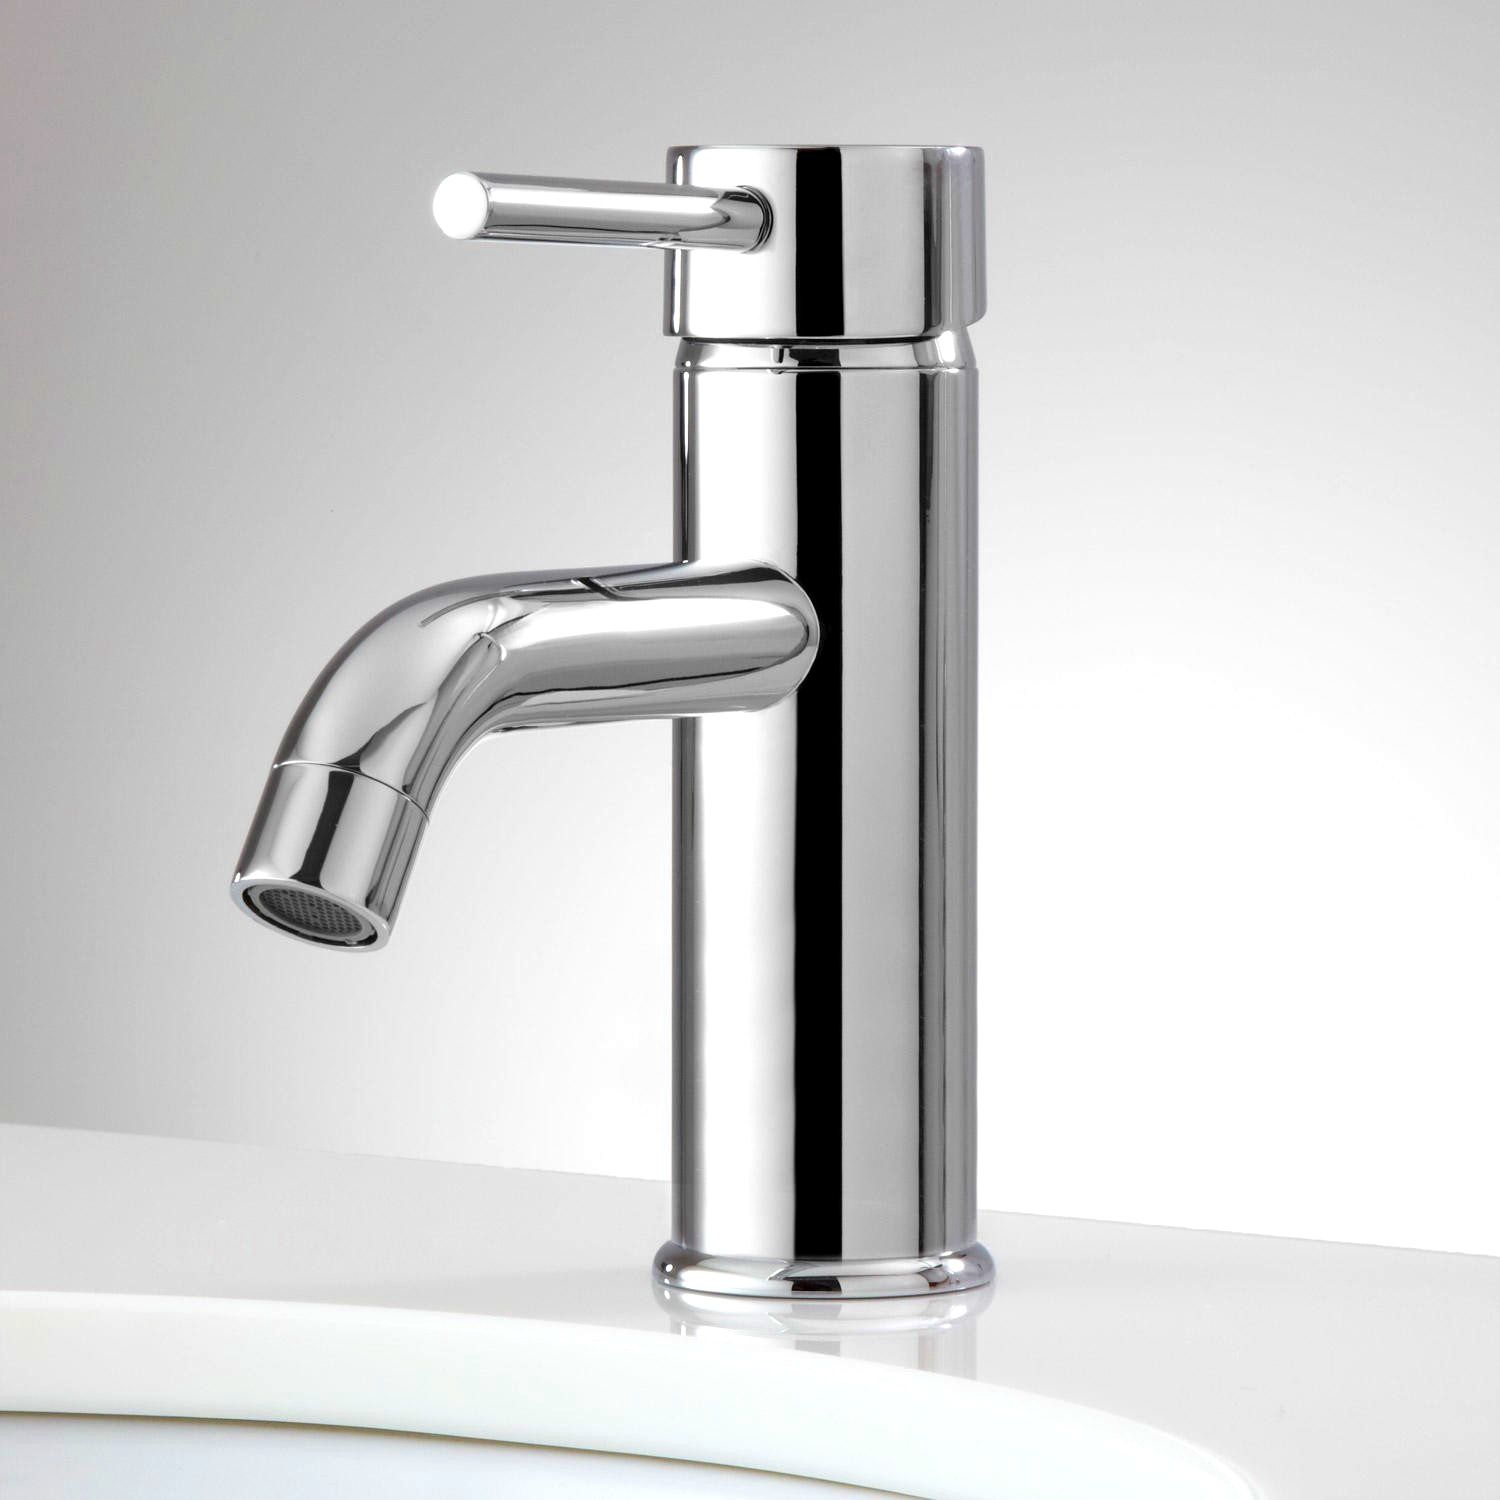 Hansgrohe bathroom faucet | Meadowcrest Ideas | Pinterest | Faucet